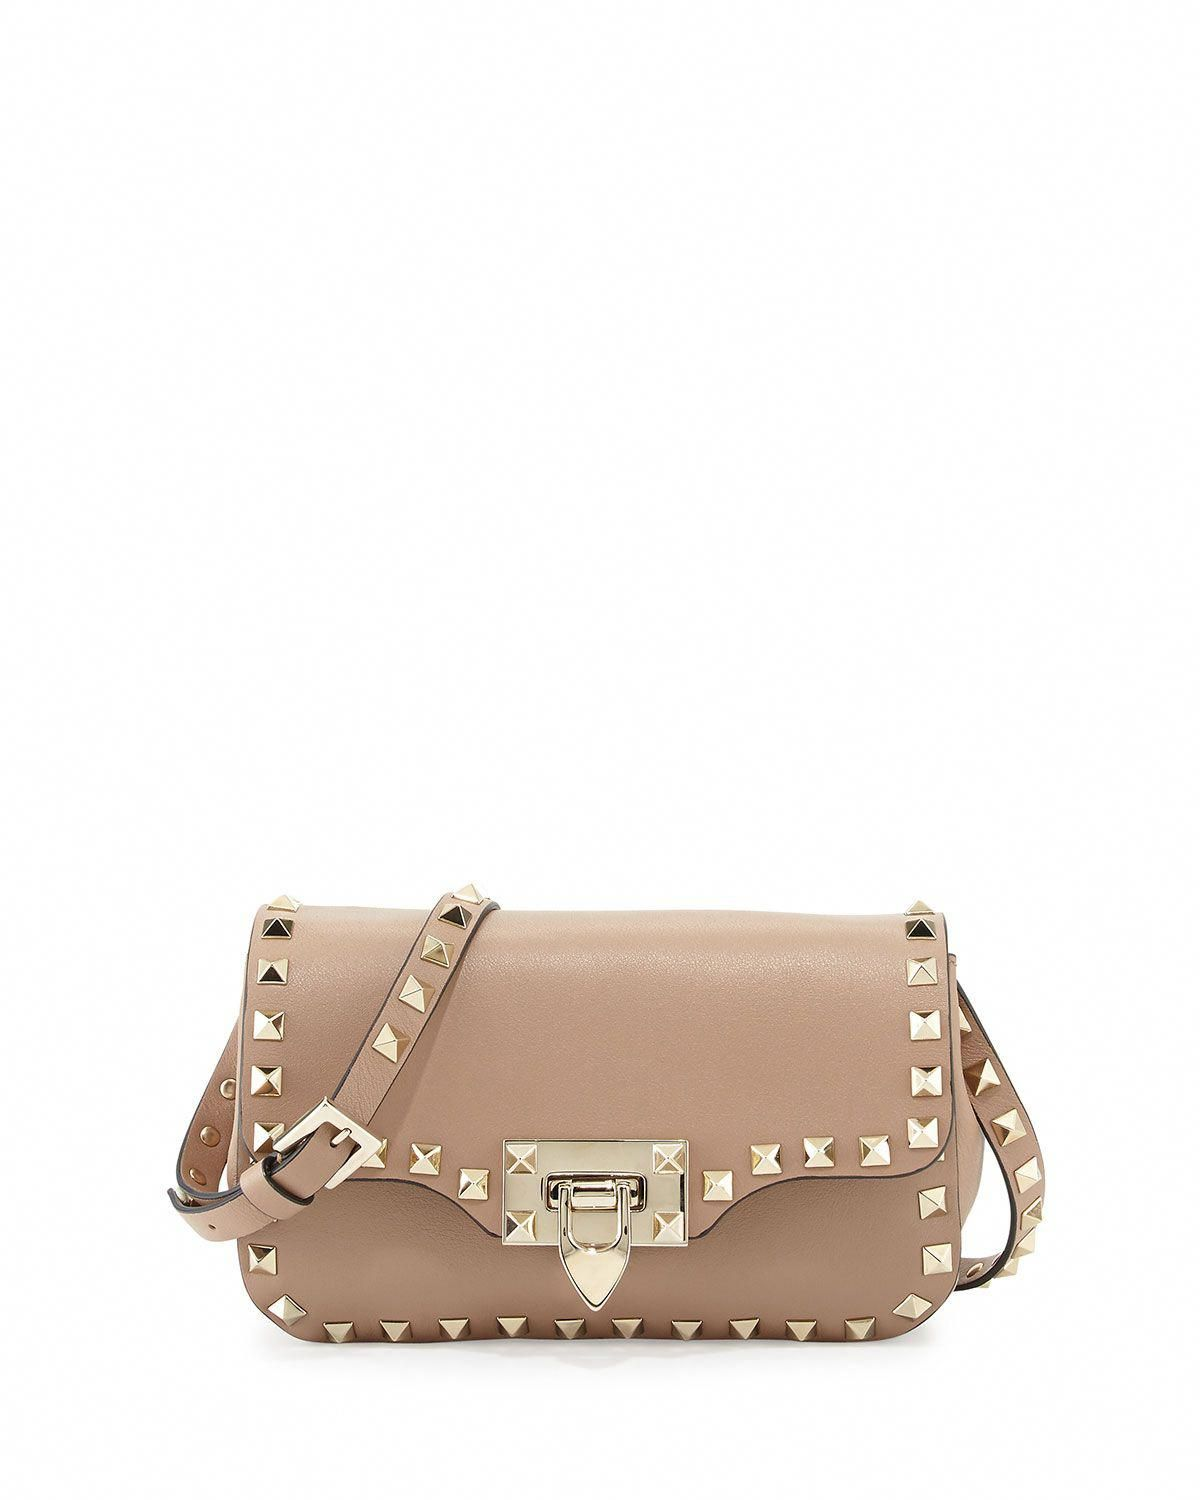 bfb28e3999 Valentino Rockstud Mini Leather Crossbody Bag